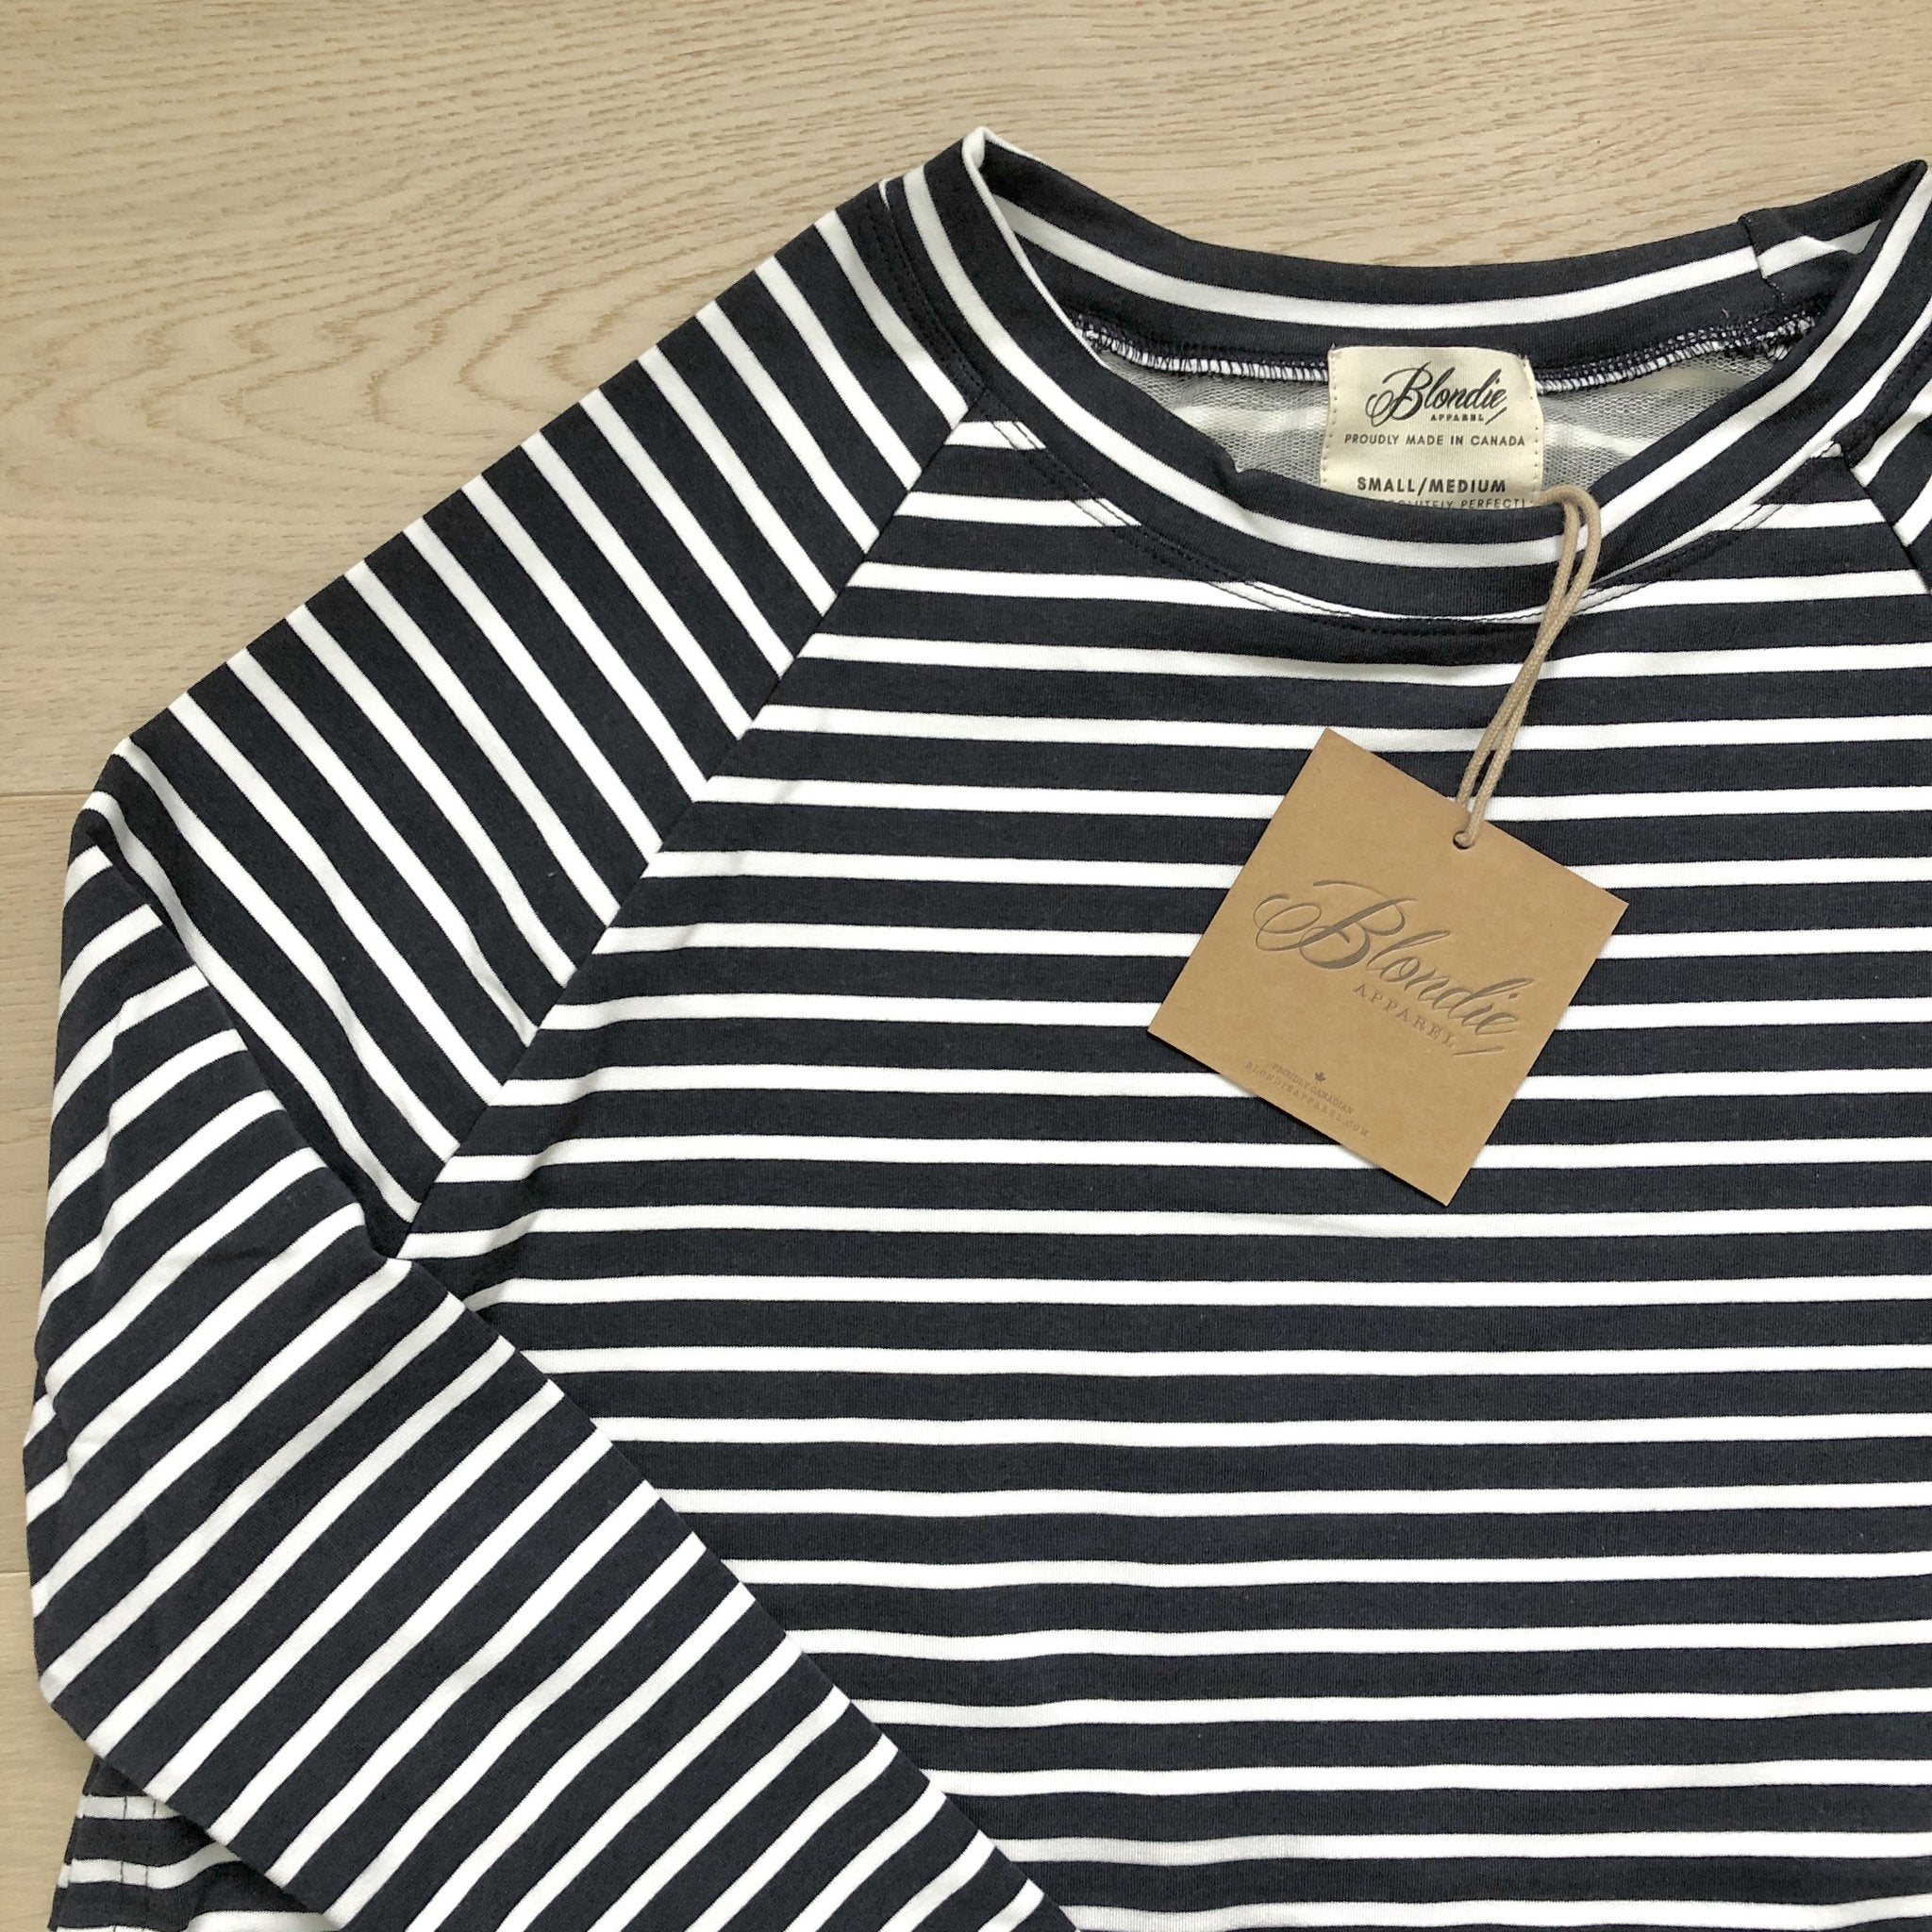 Blondie Apparel East End Bamboo Sweater, Navy & White Stripes